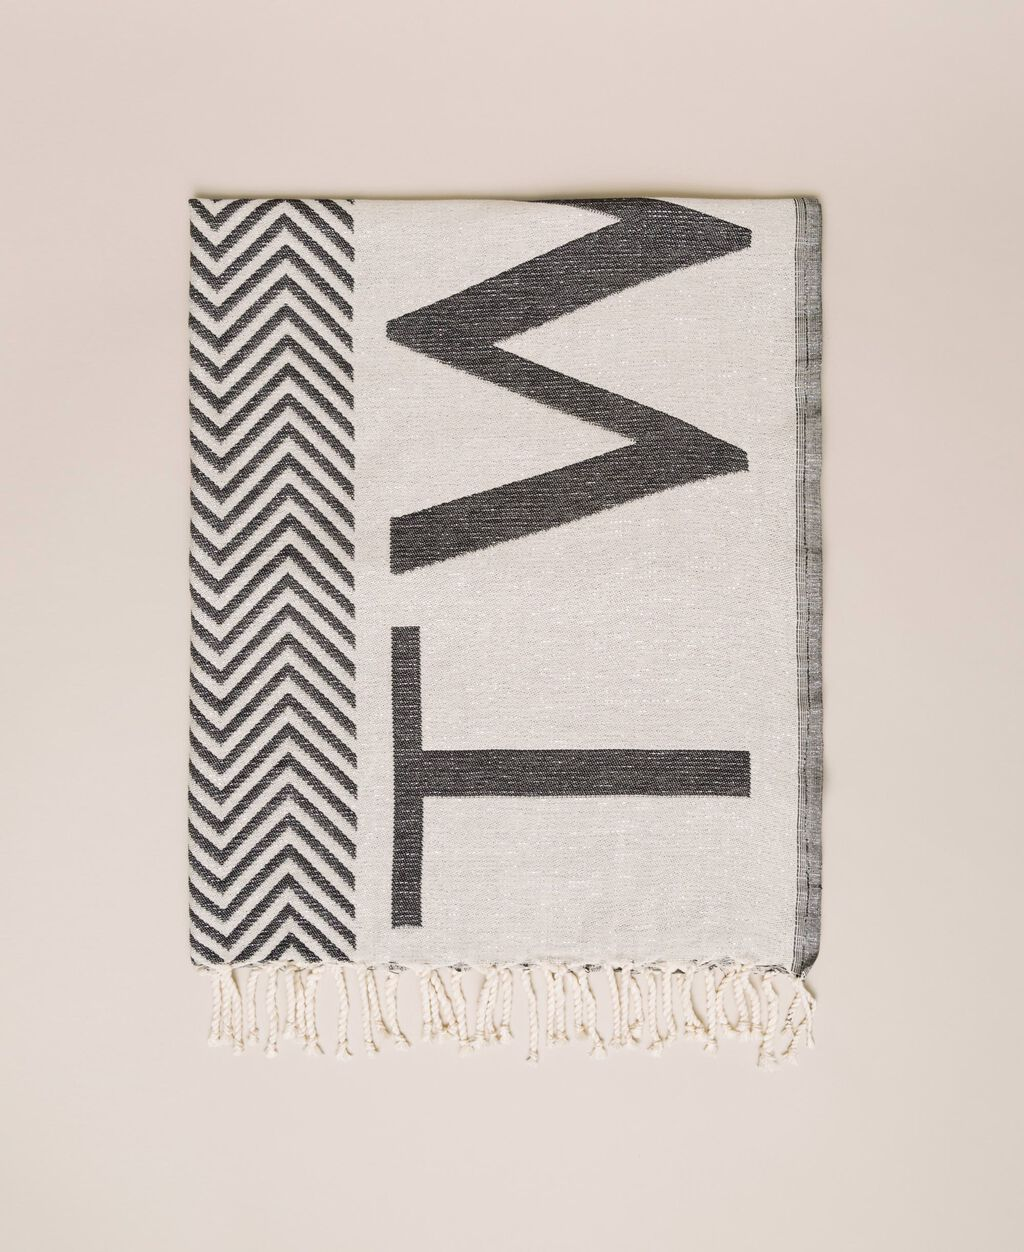 Jacquard beach towel with chevron motif